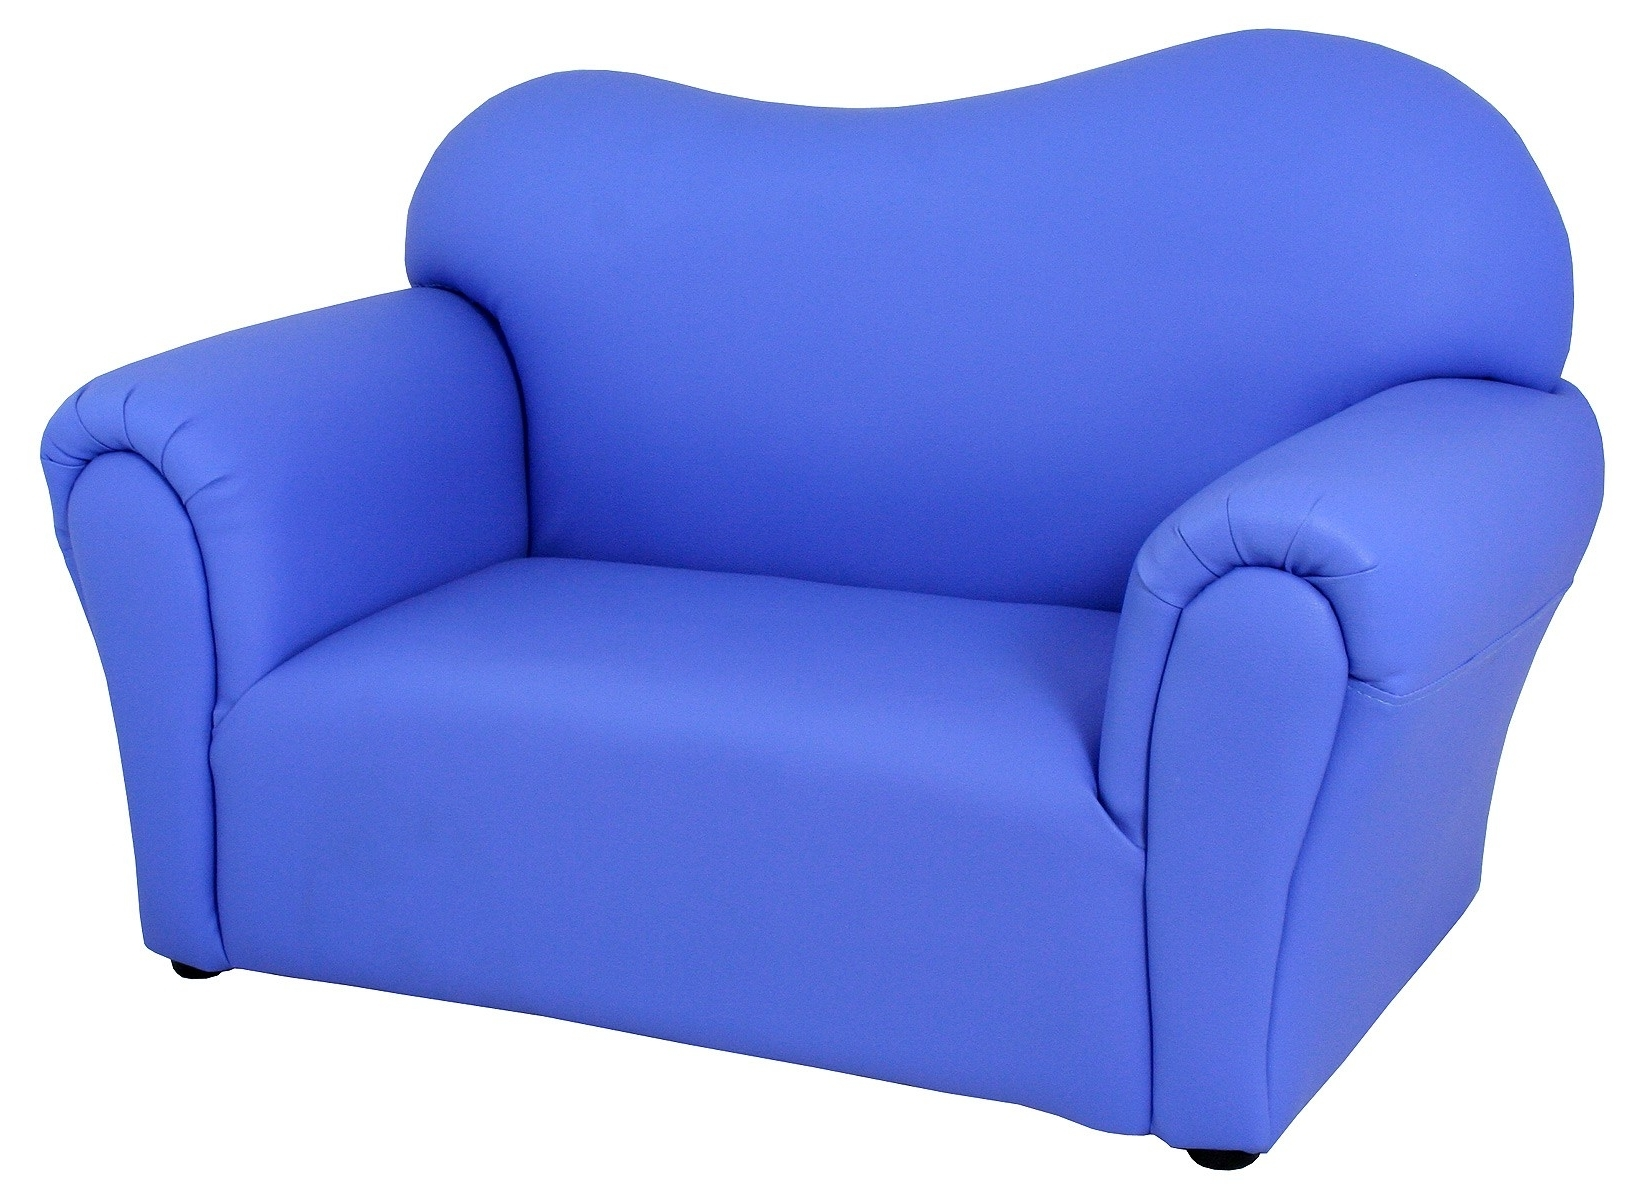 Mini Sofas With Most Popular Childrens Blue Mini Sofa – Be Fabulous! (View 6 of 20)